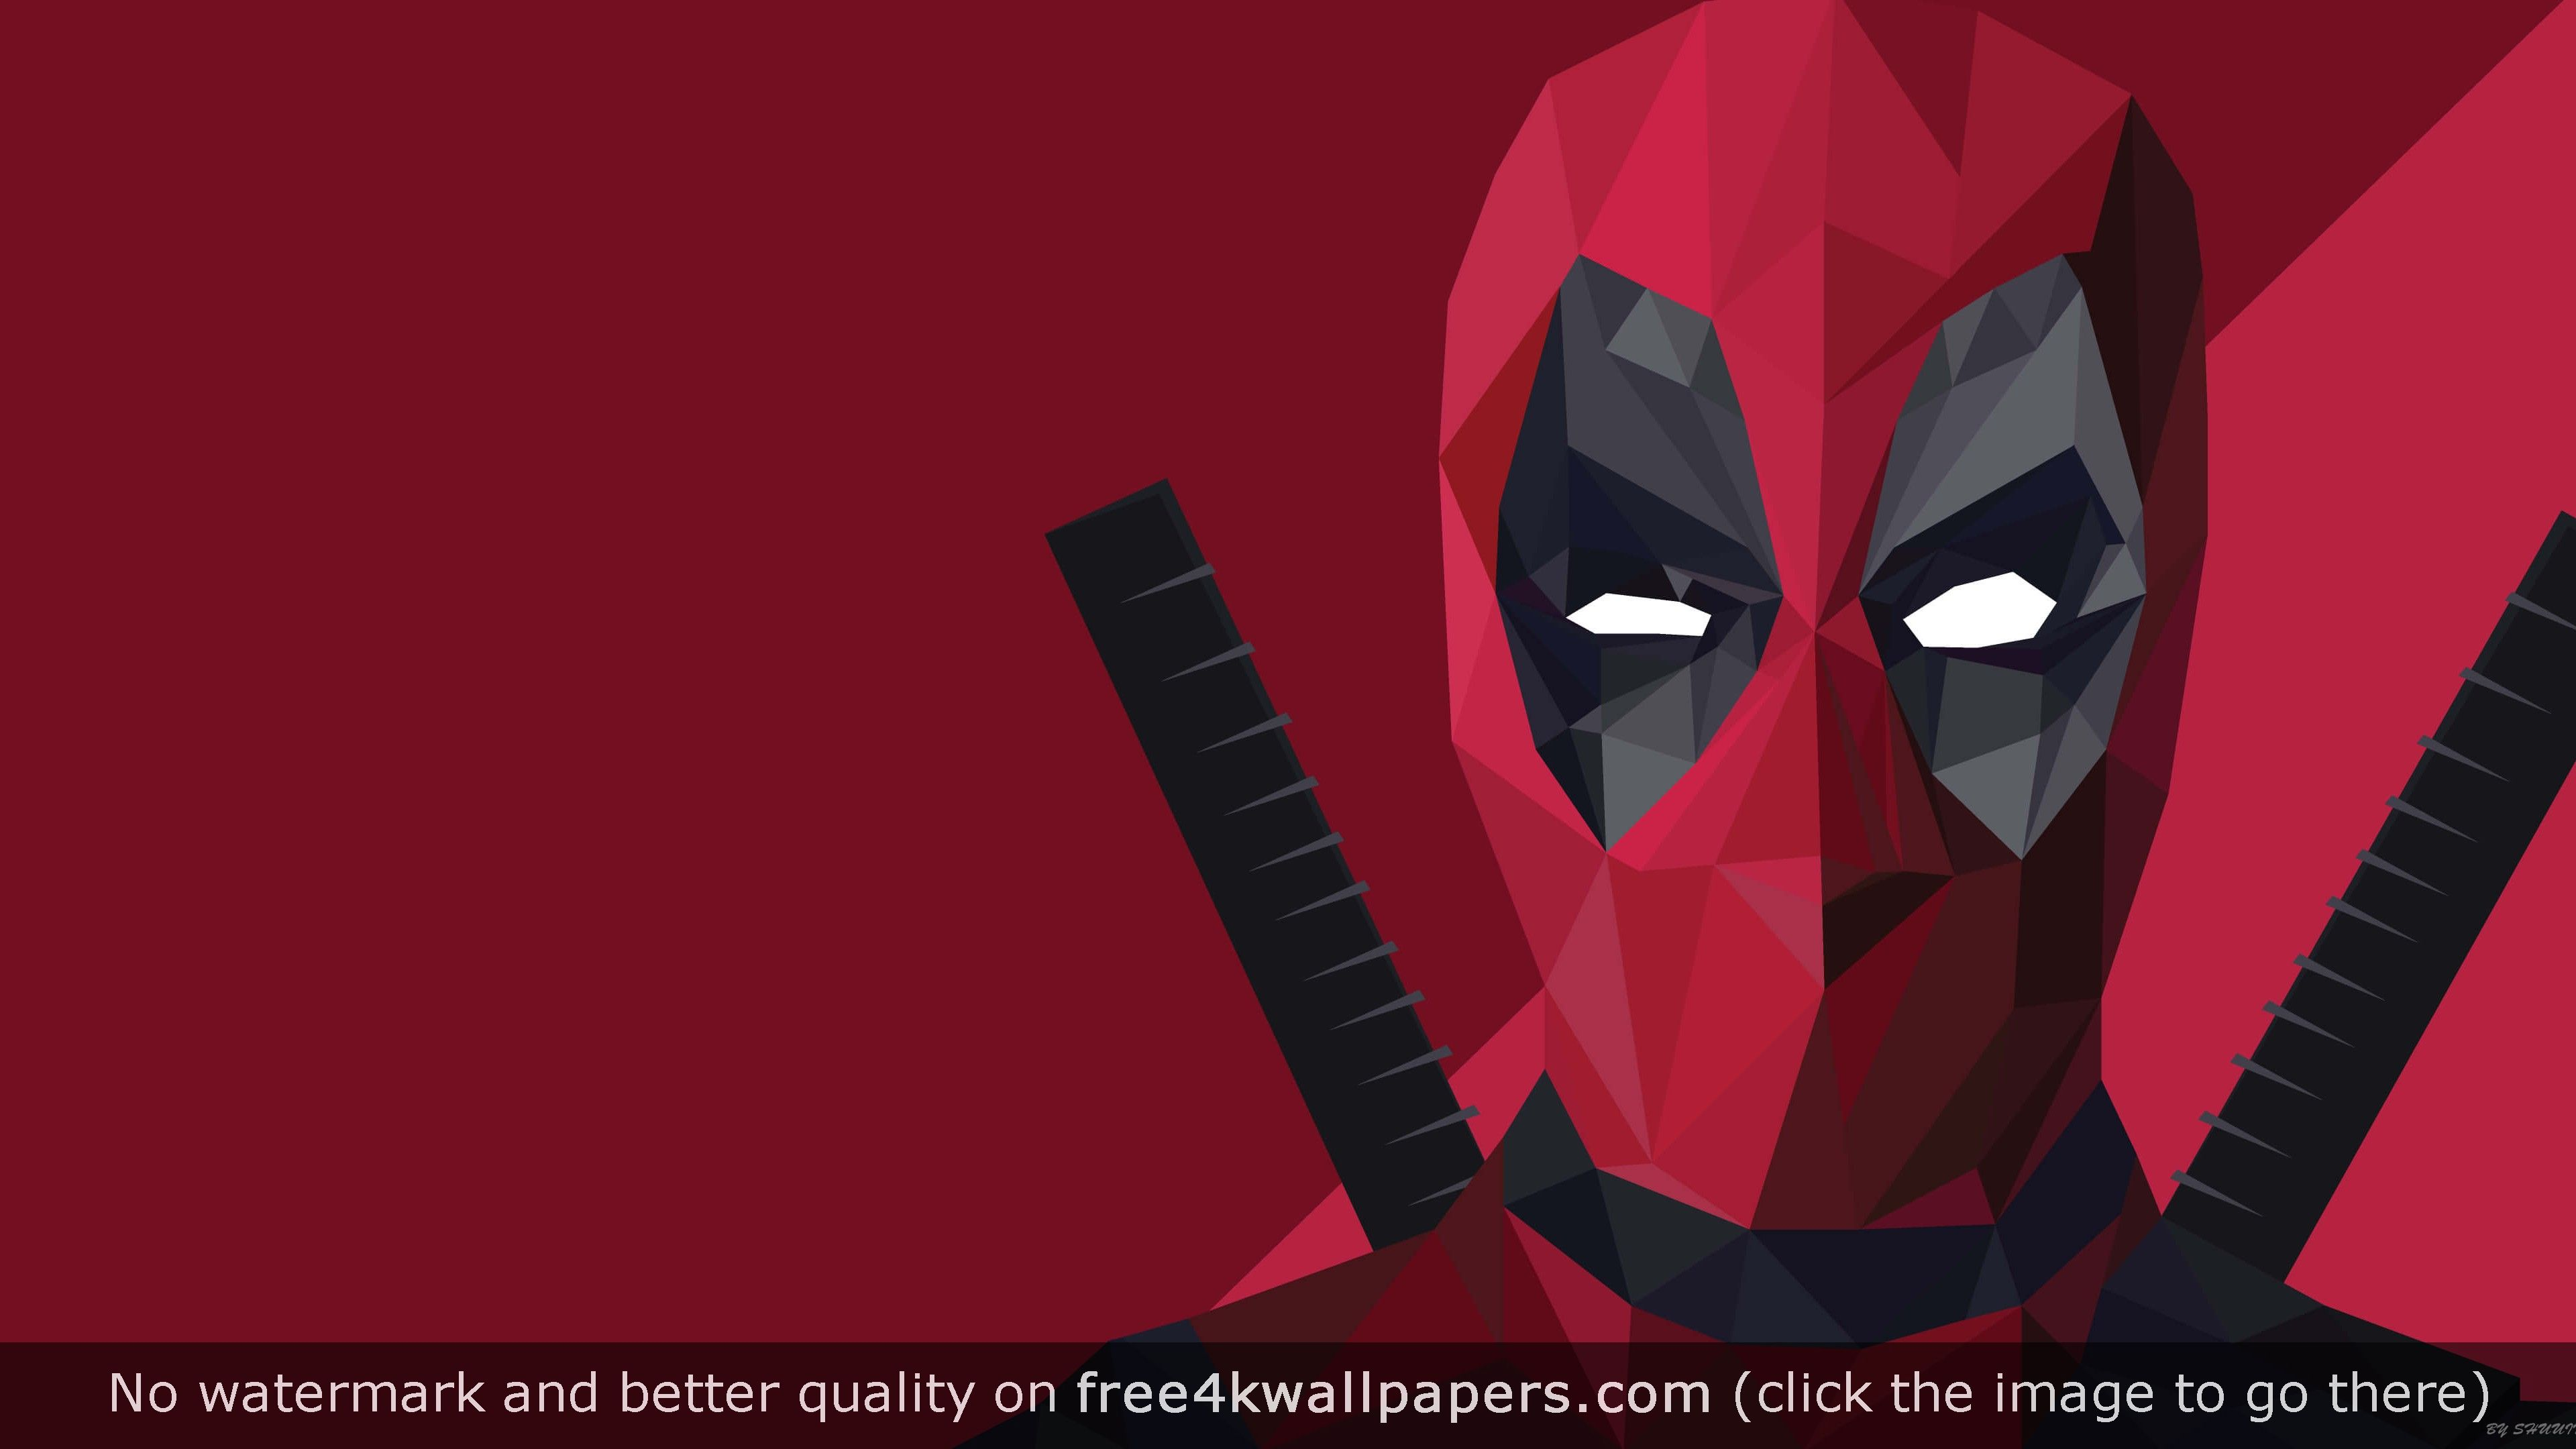 deadpool logo wallpaper 4k